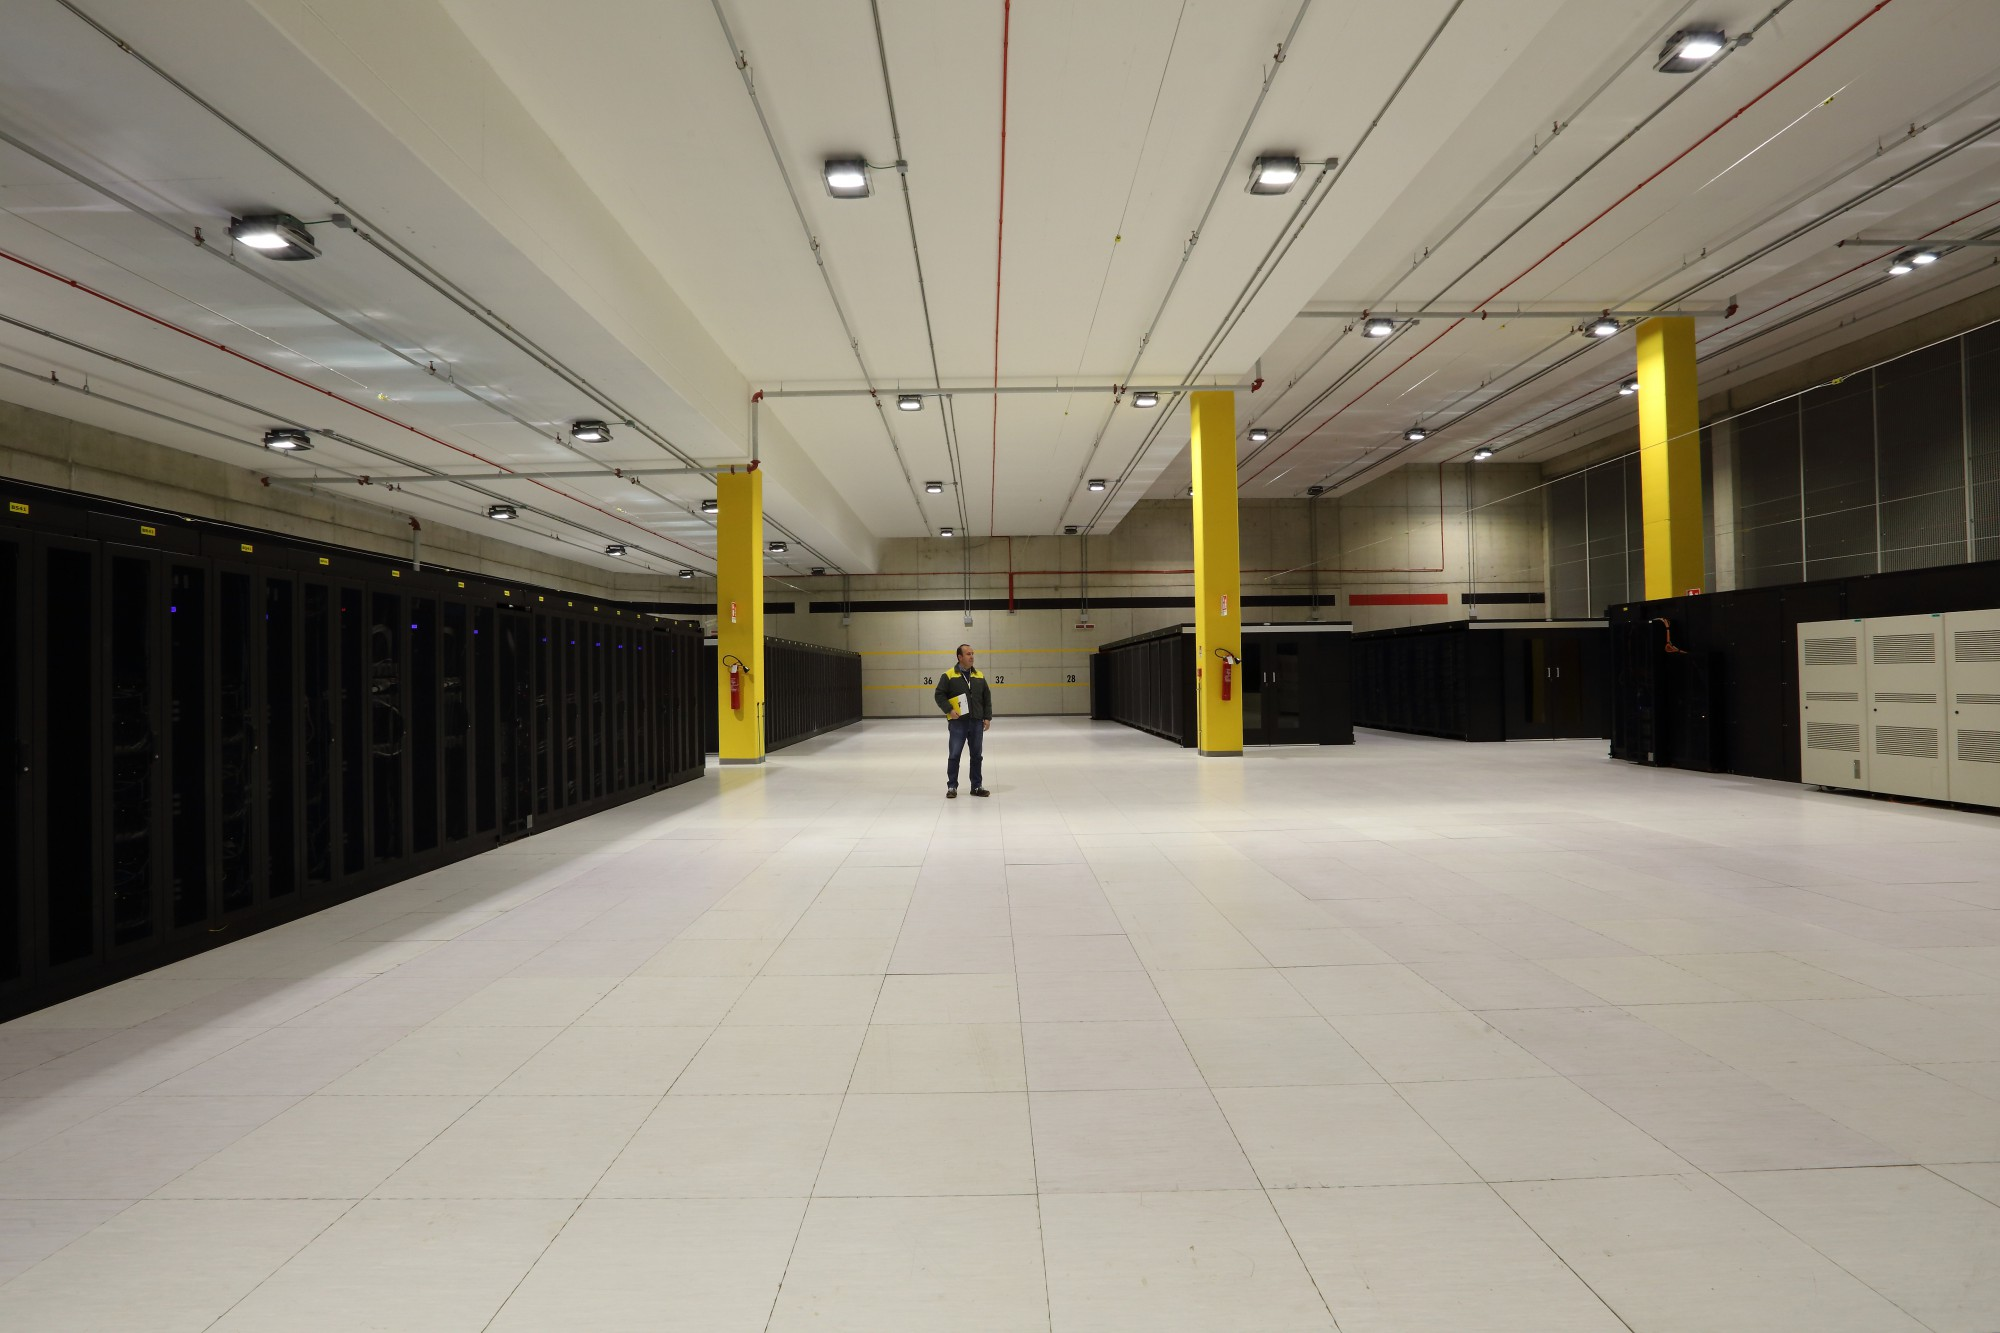 Eni fires up its supercomputer, breaks into the TOP500's top ten